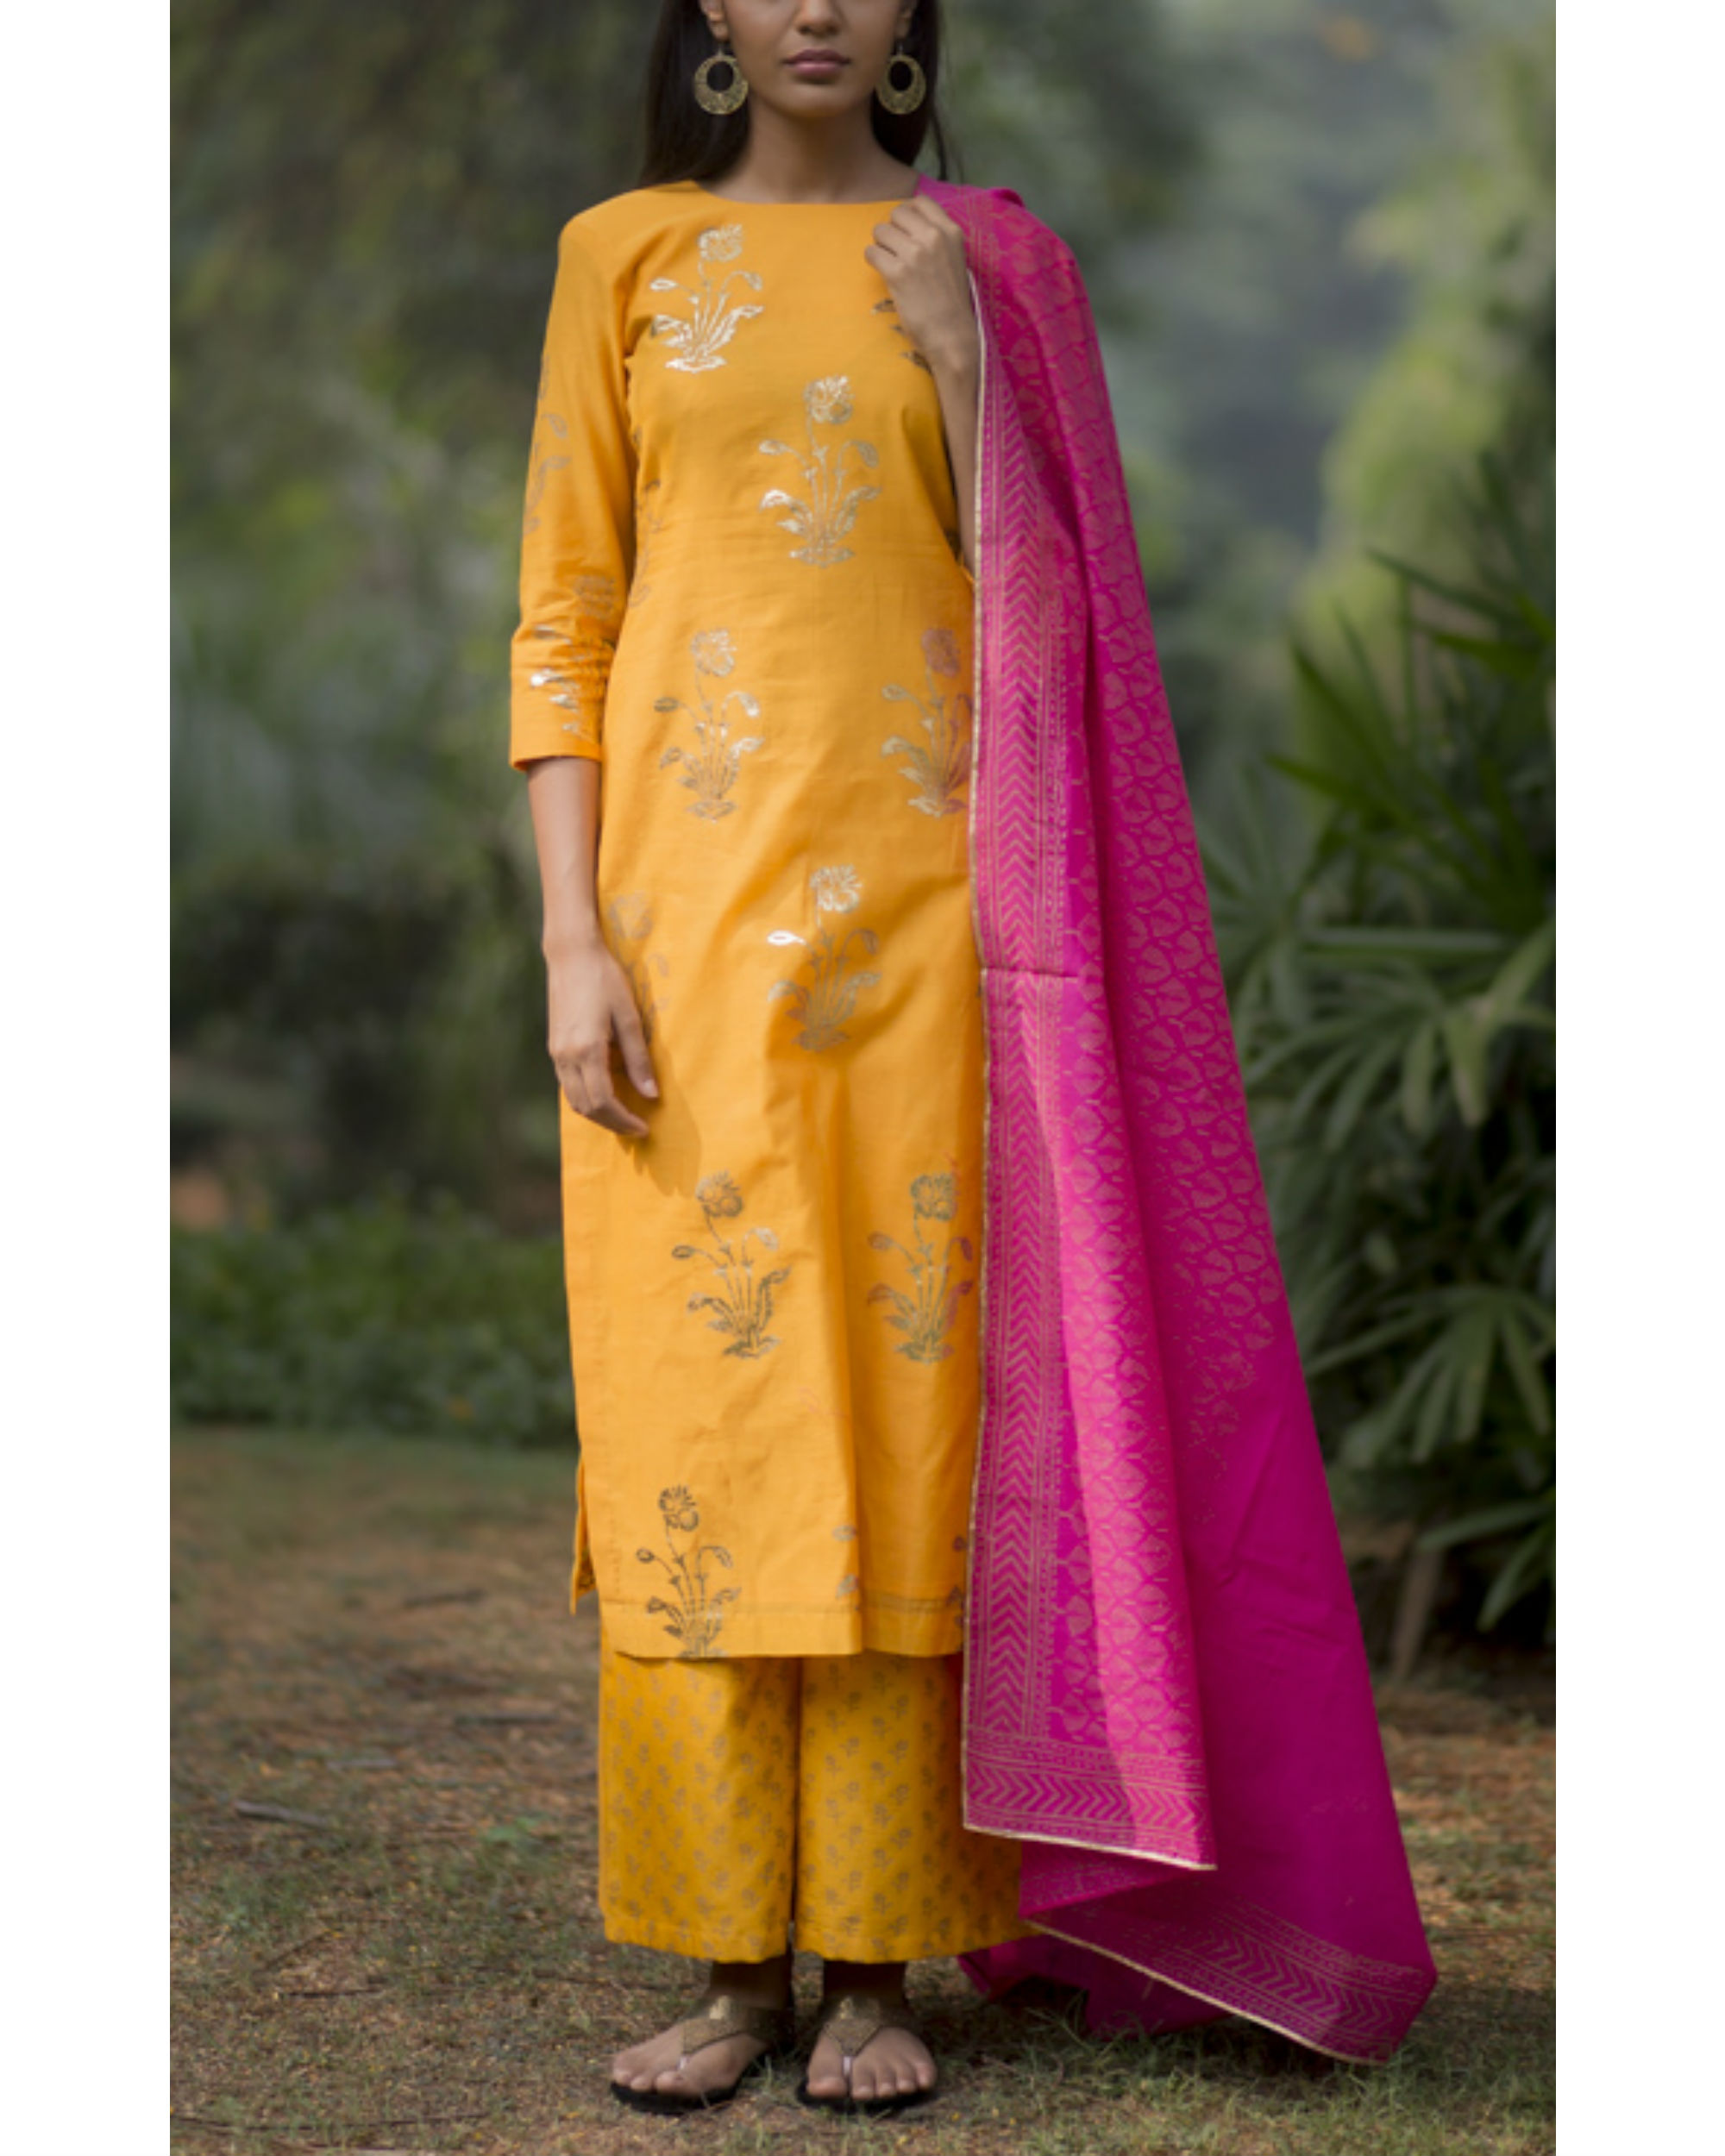 Sunflower kurta palazzo set  with gulaabo block printed dupatta